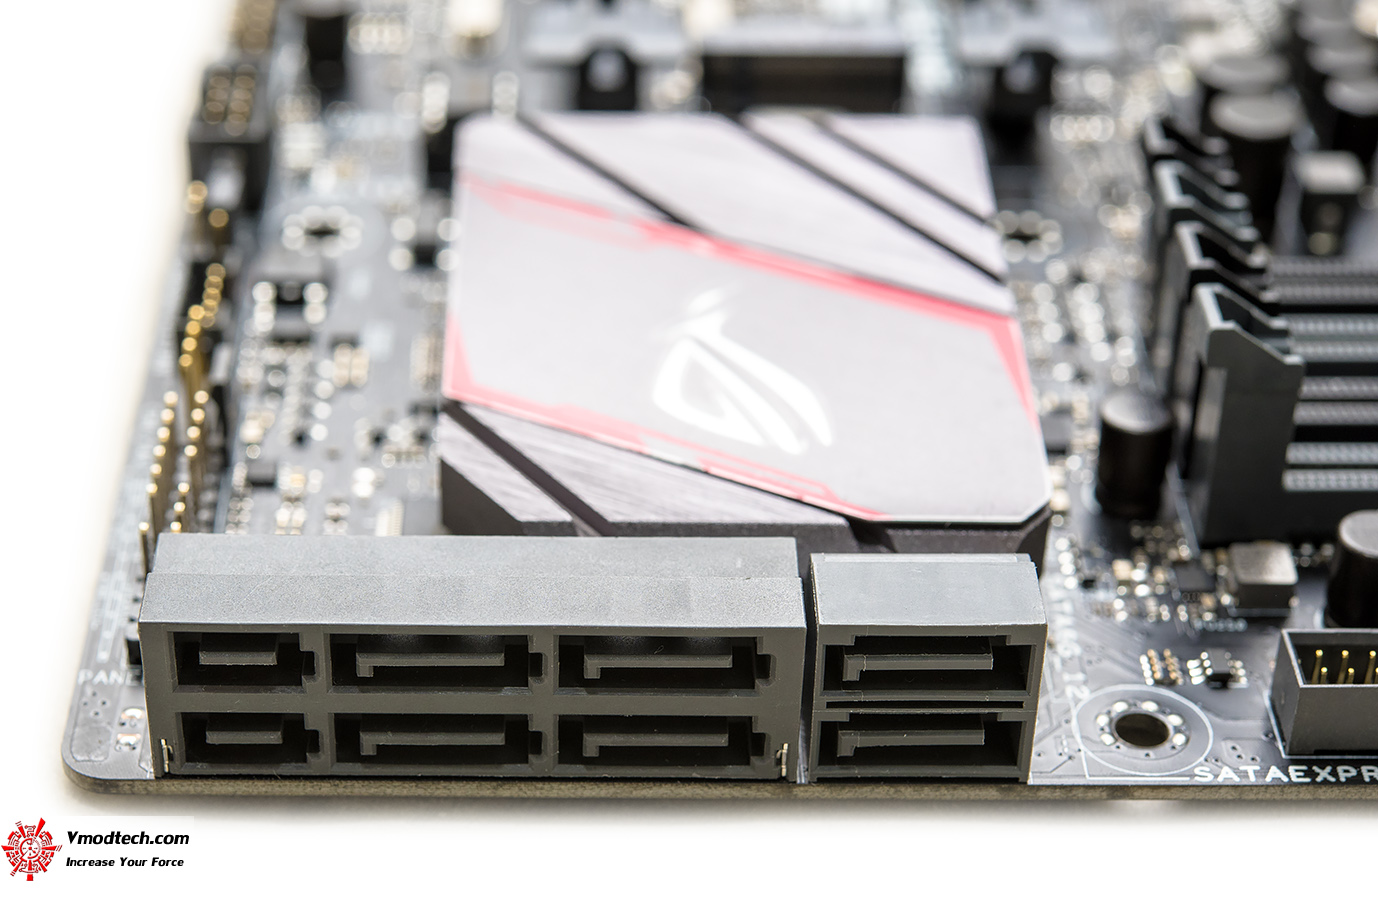 dsc 9080 ASUS ROG MAXIMUS VIII GENE Motherboard Review